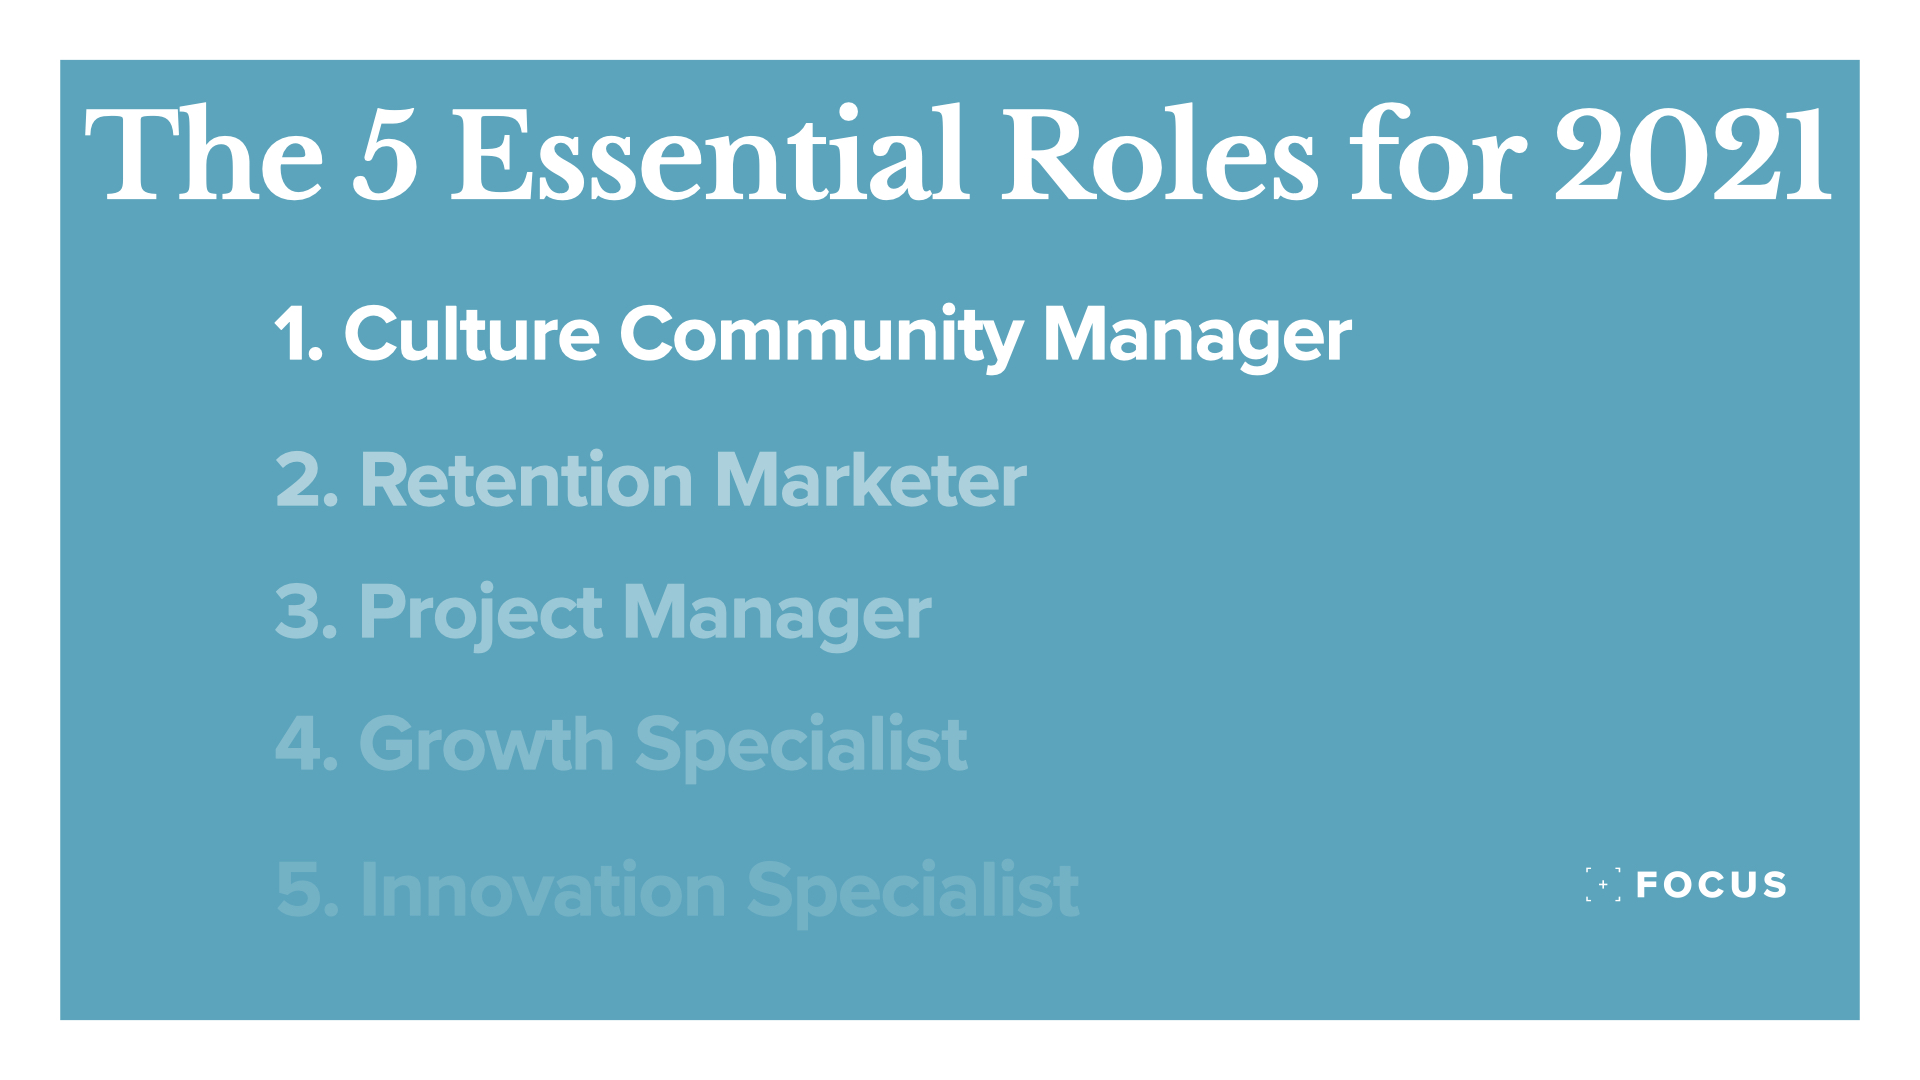 Culture community manager & The essential roles for 2021